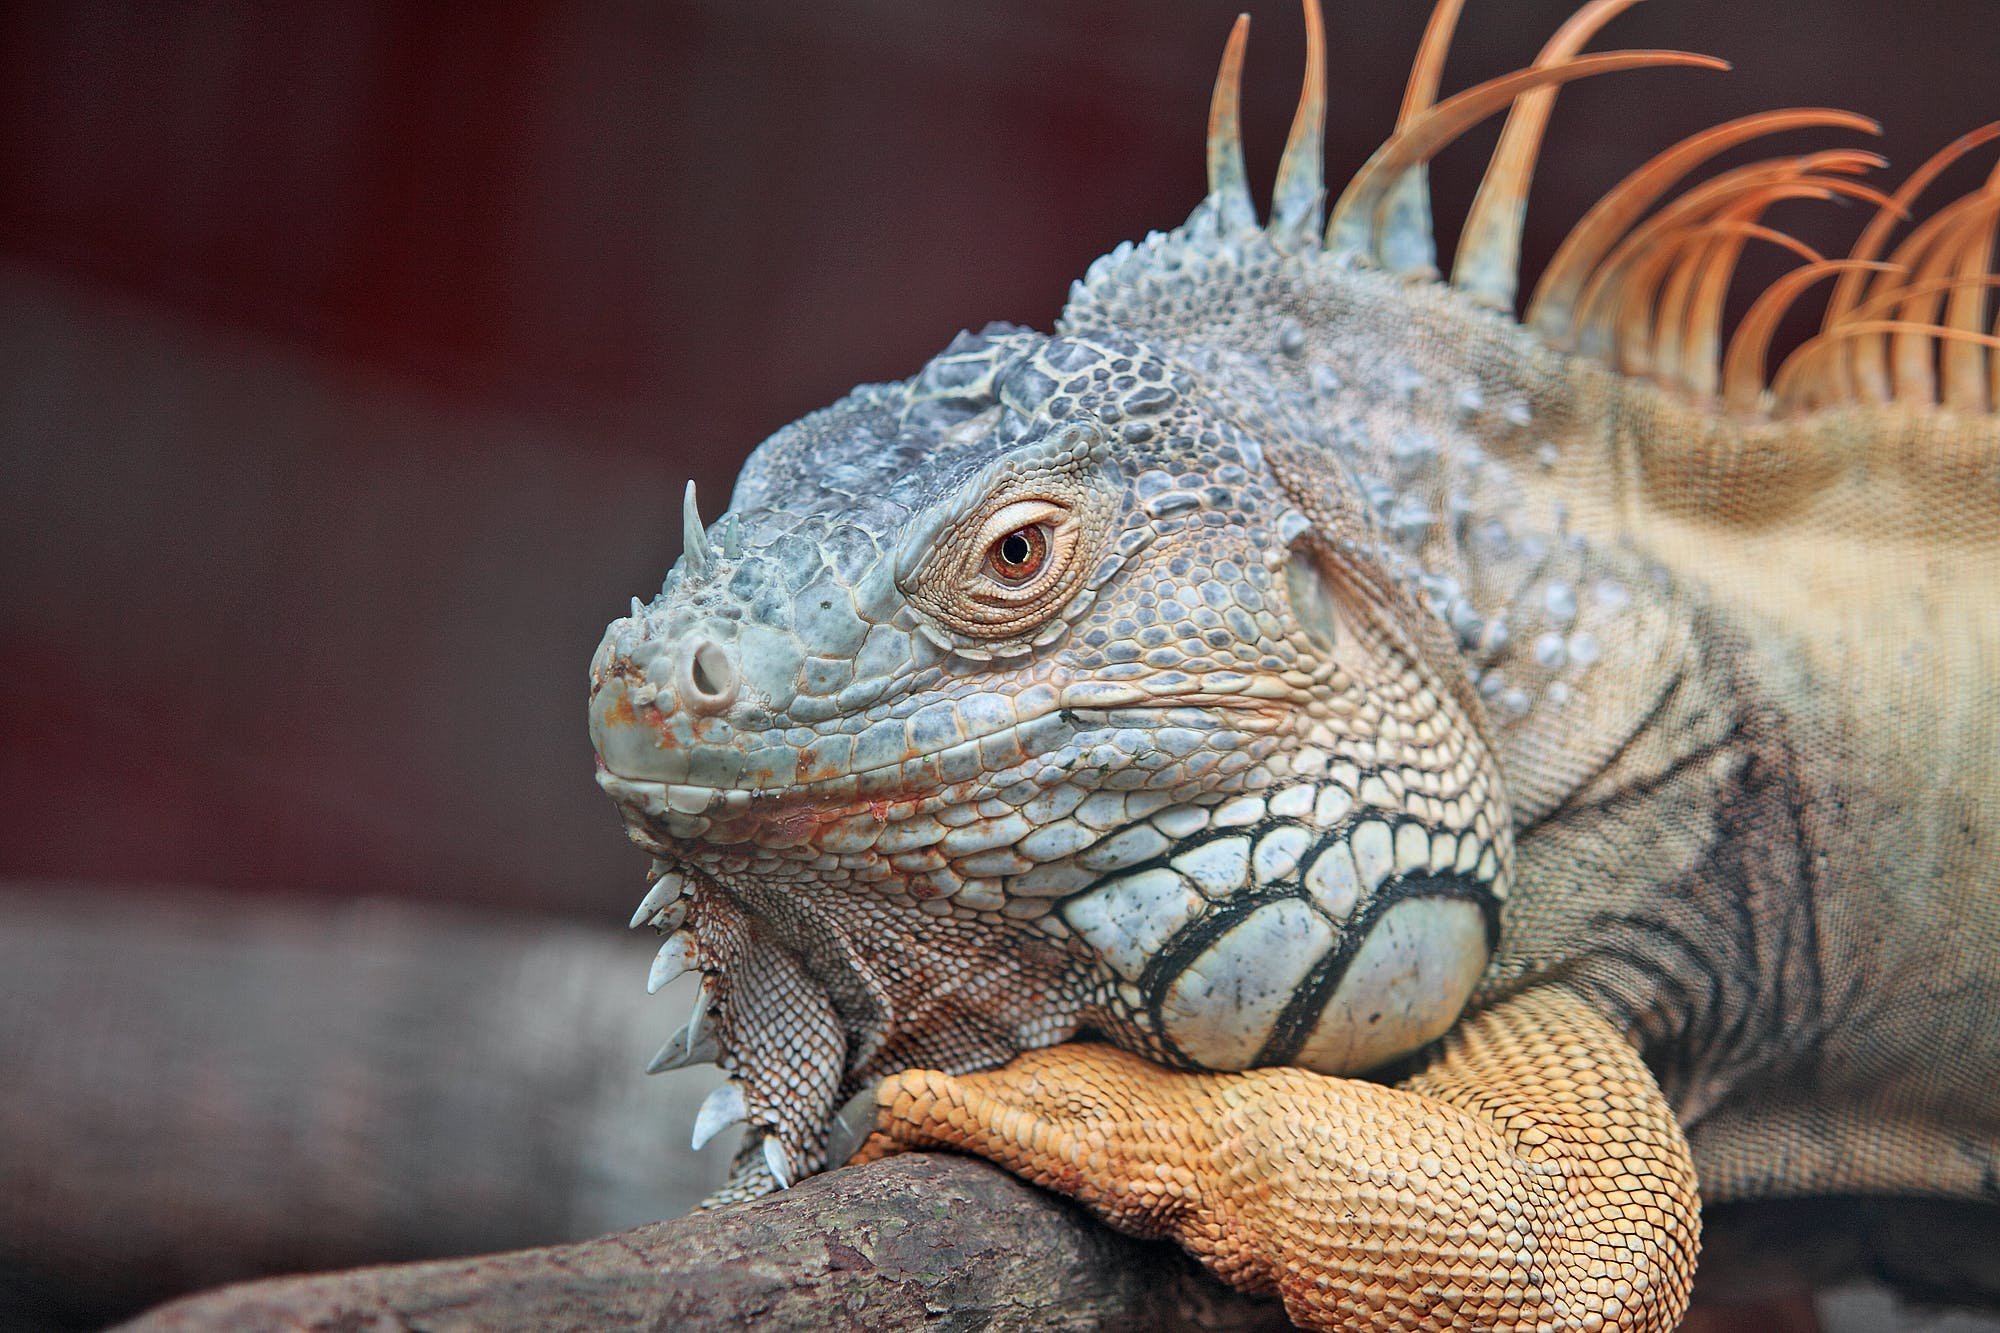 Wildlife Photography of Blue Iguana Lying on Tree